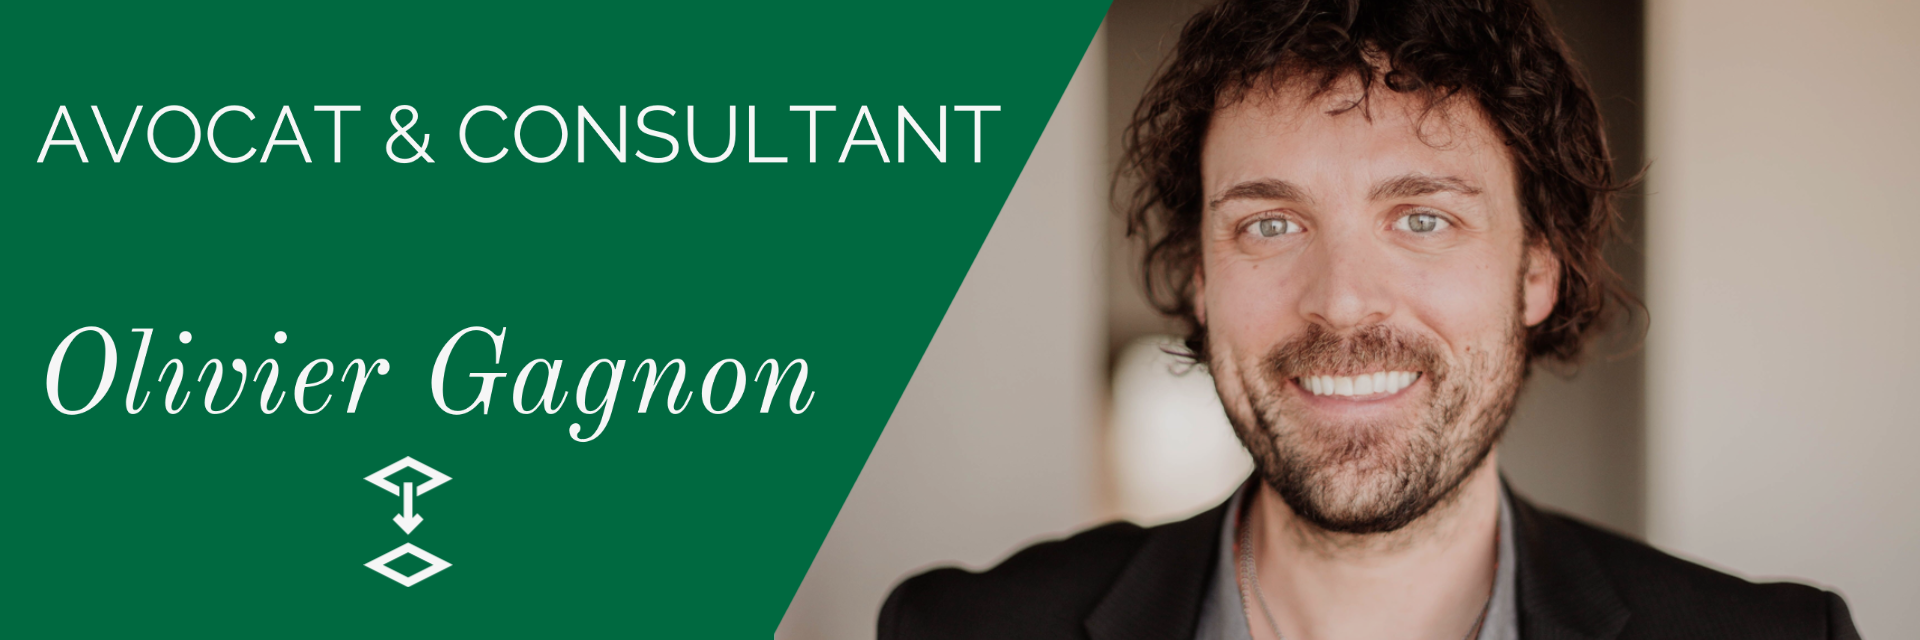 Olivier Gagnon, LL.B./M.B.A. Consultant & Avocat Droit commercial & agricole